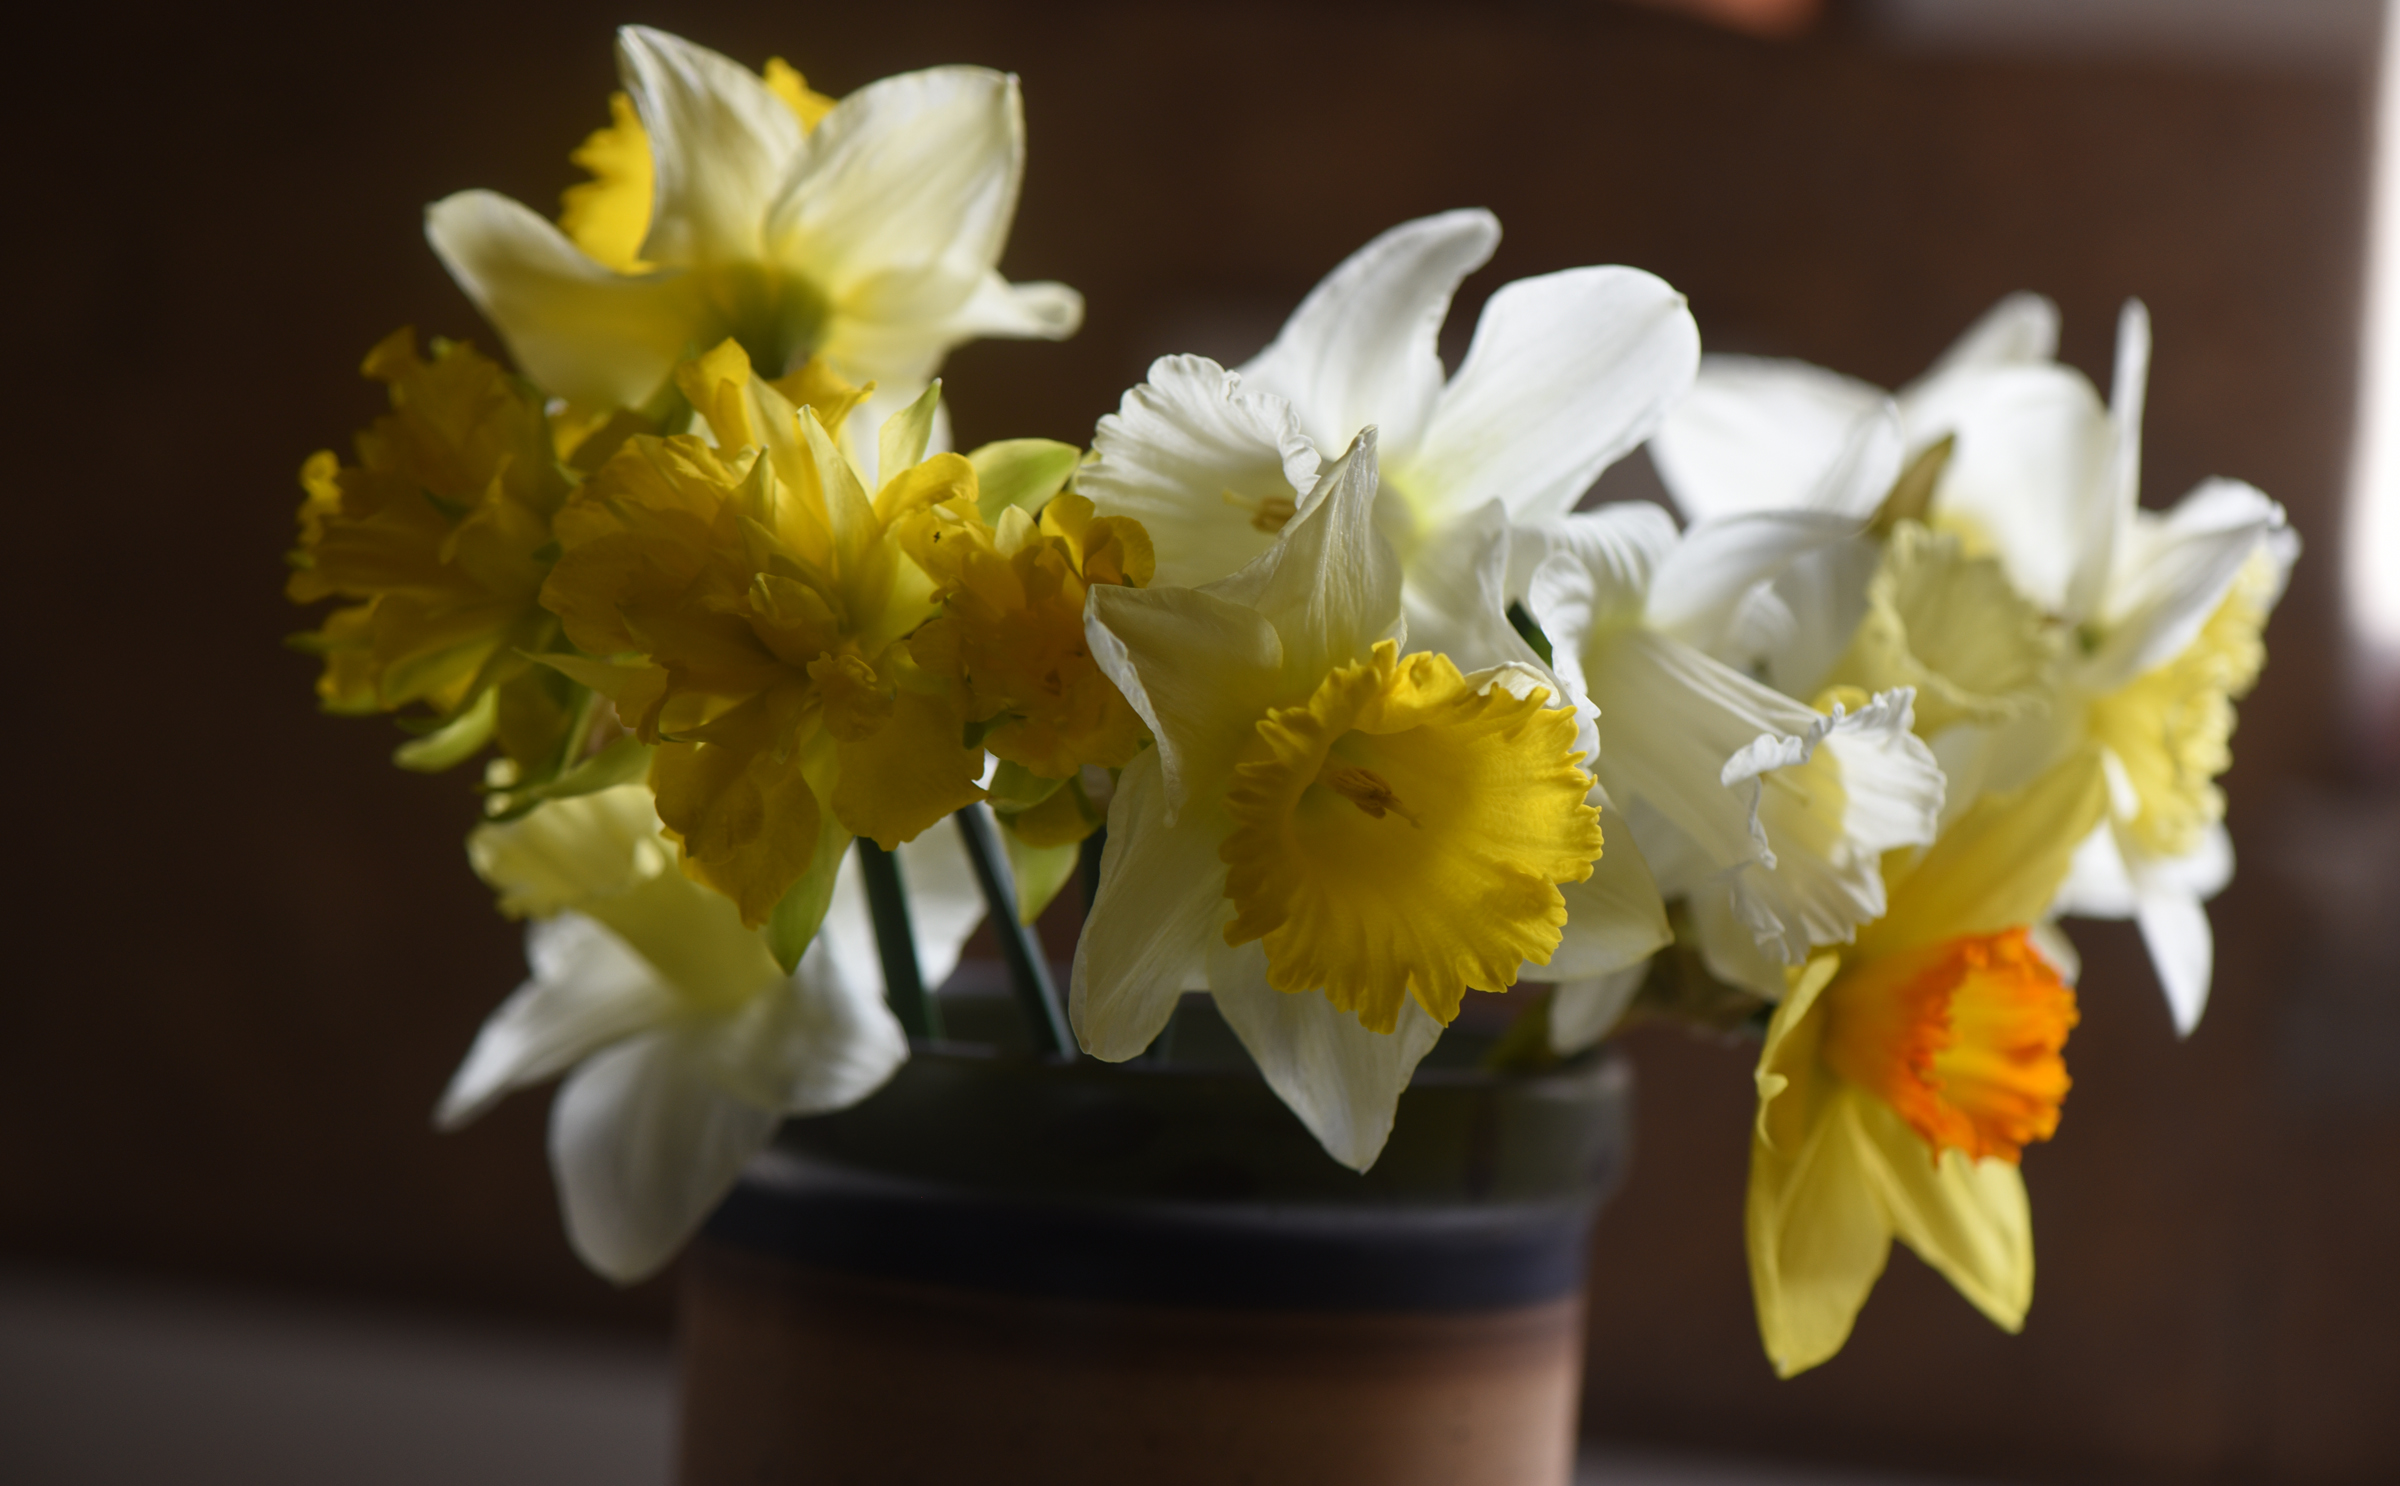 In Doug's Garden: Making Daffodils Last in Your Home